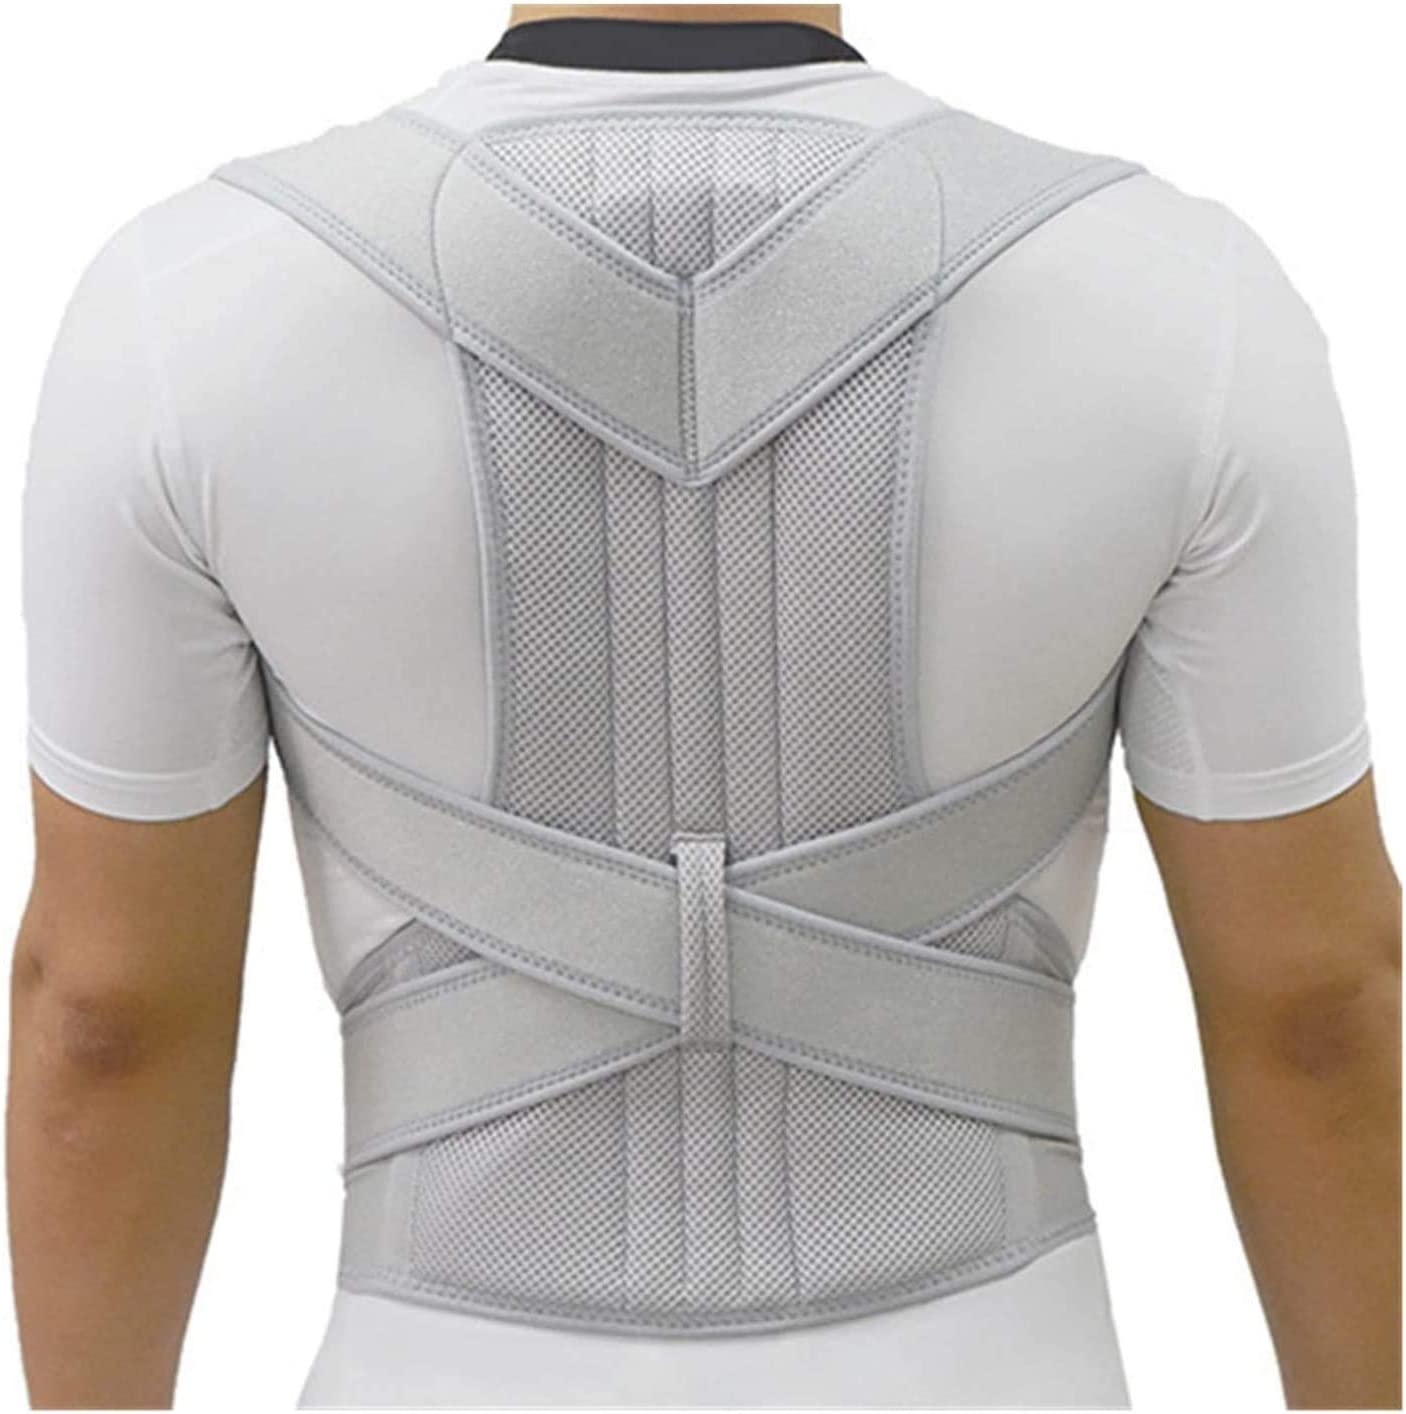 Posture Corrector for Men and Women Back Support Financial Popular product sales sale Straightener